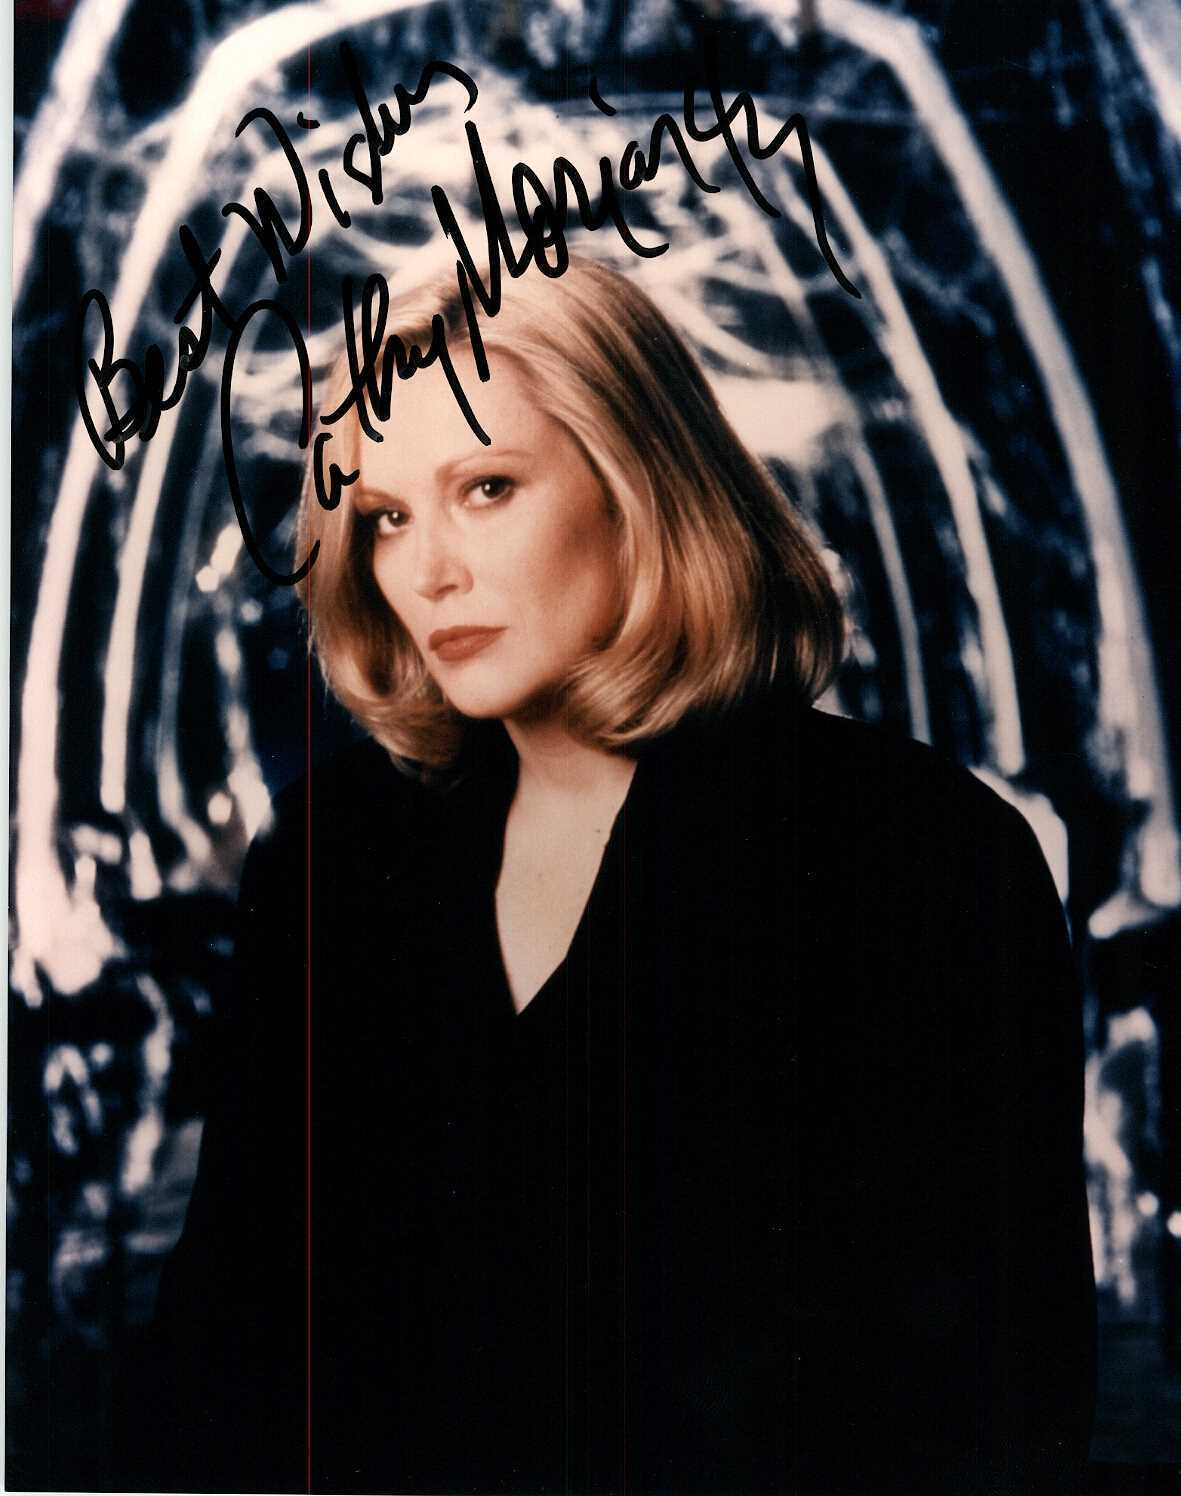 Primary image for Cathy Moriarty Signed Autographed Glossy 8x10 Photo